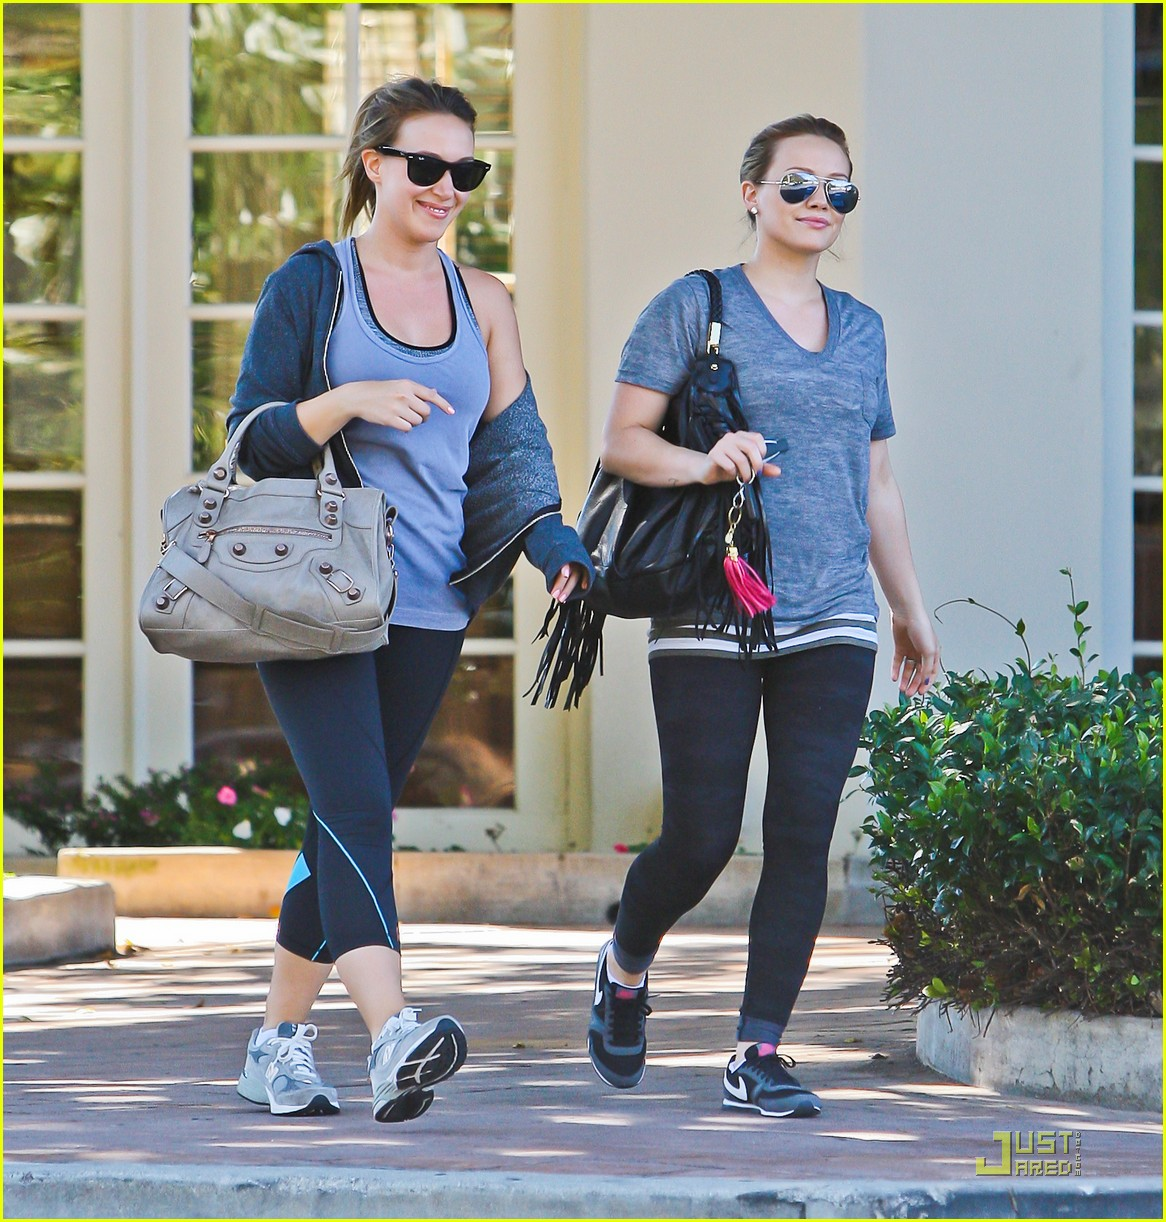 hilary haylie duff gym 06